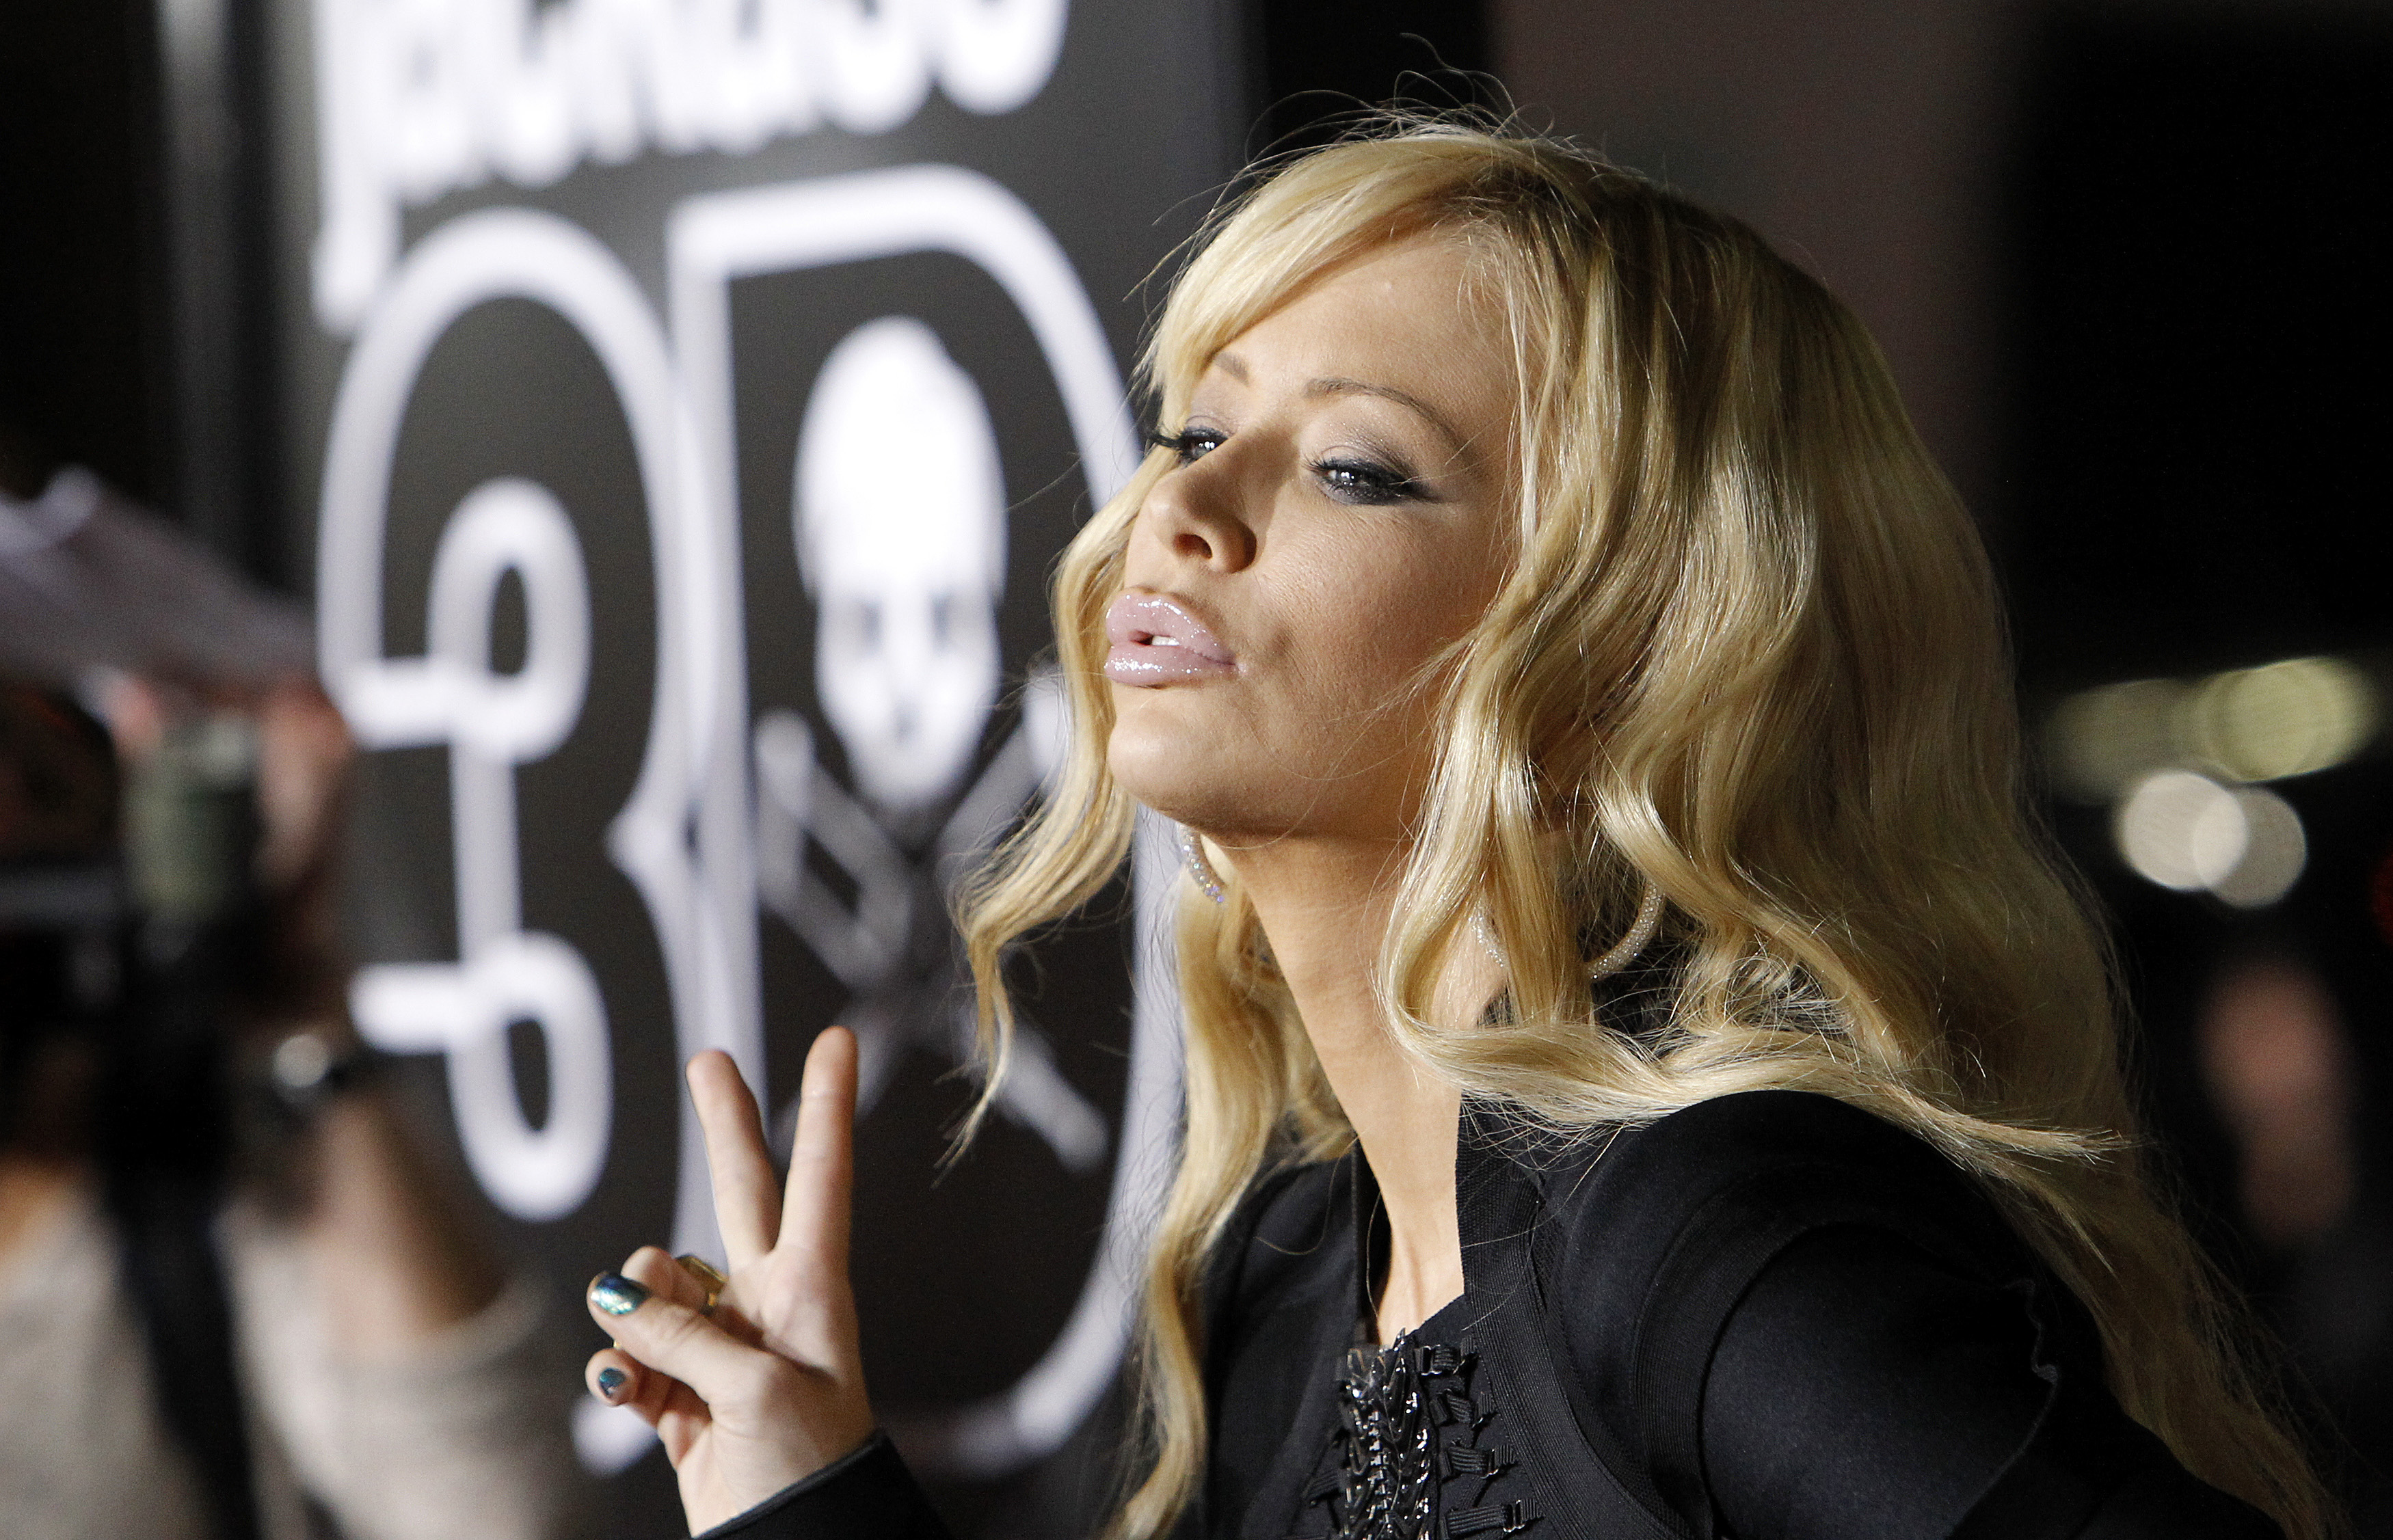 "Actress Jenna Jameson poses at the premiere of ""Jackass 3D"" at Grauman's Chinese theatre in Hollywood, California October 13, 2010. The movie opens in the U.S. on October 15. REUTERS/Mario Anzuoni"